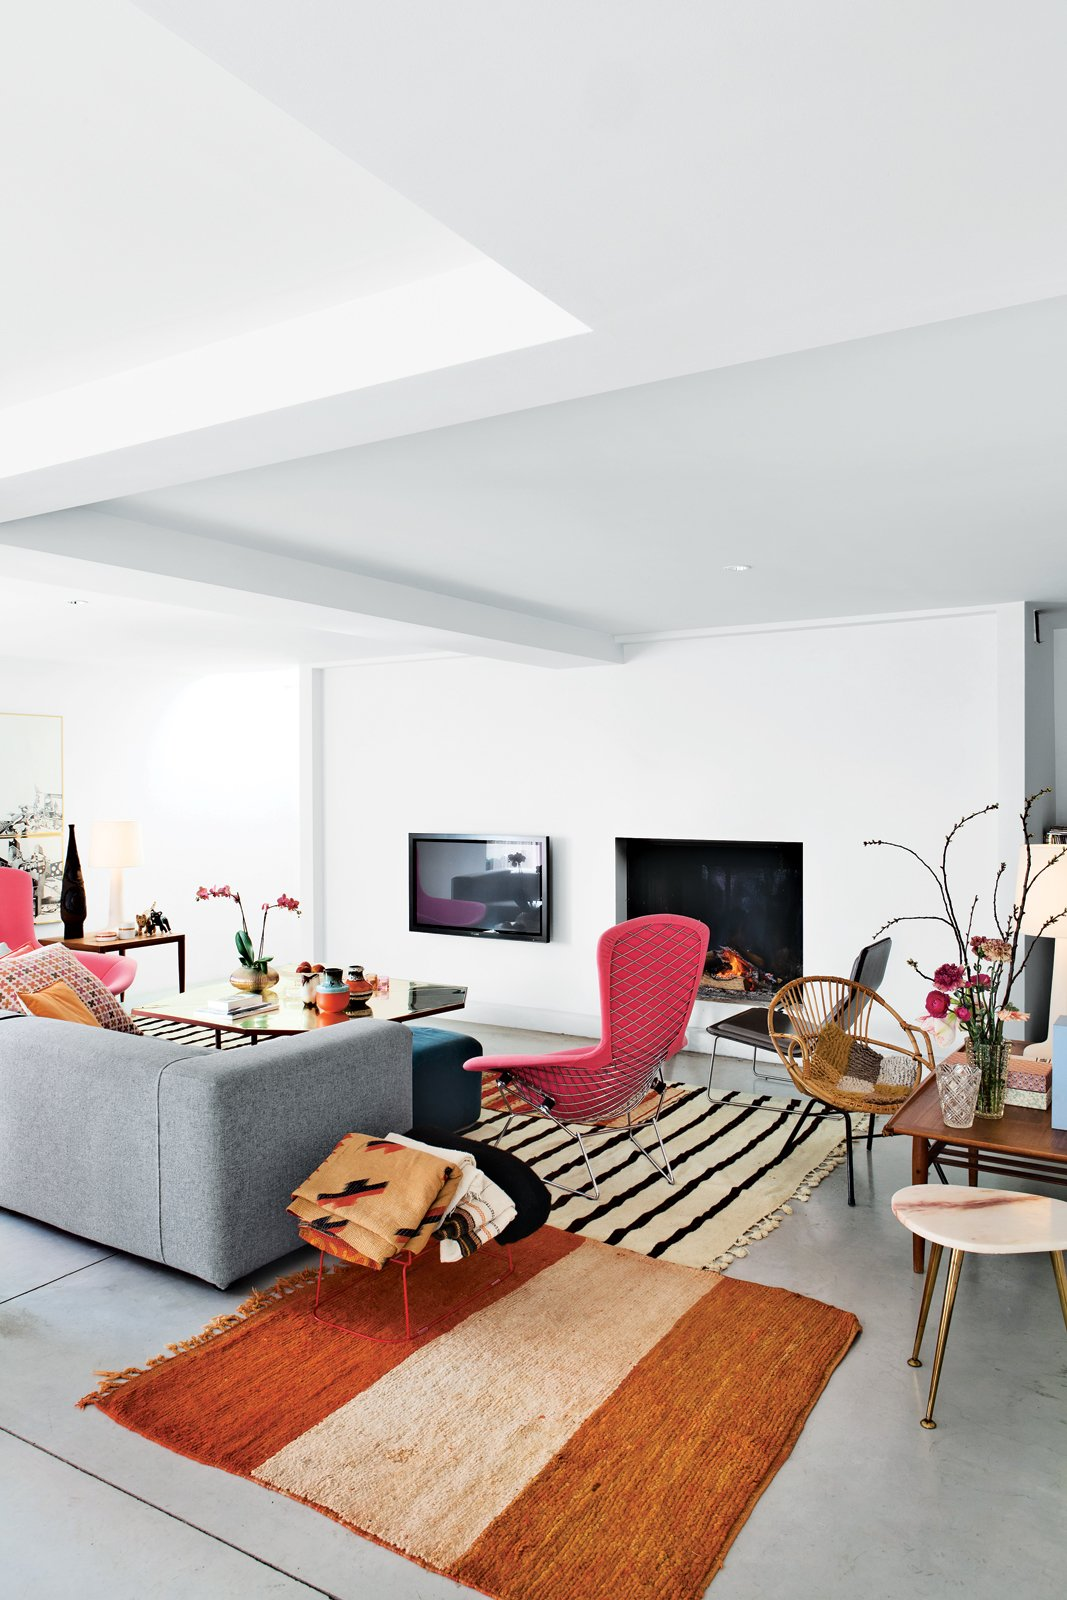 A pair of interior architects with a years-in-the-making furniture collection recast an old Belgian factory—in Bellem, a 25-minute drive out of Ghent and halfway to Bruges—as a playful family home. The stars of the living room are a pair of pink Bird chairs by Harry Bertoia for Knoll, accented by a brass-and-steel coffee table designed by homeowners as well as vintage marble-topped and wood occasional tables and antique rugs are from Morocco. Photo by Frederik Vercruysse.  100+ Best Modern Seating Designs from Design Classic: Bertoia Seating Collection